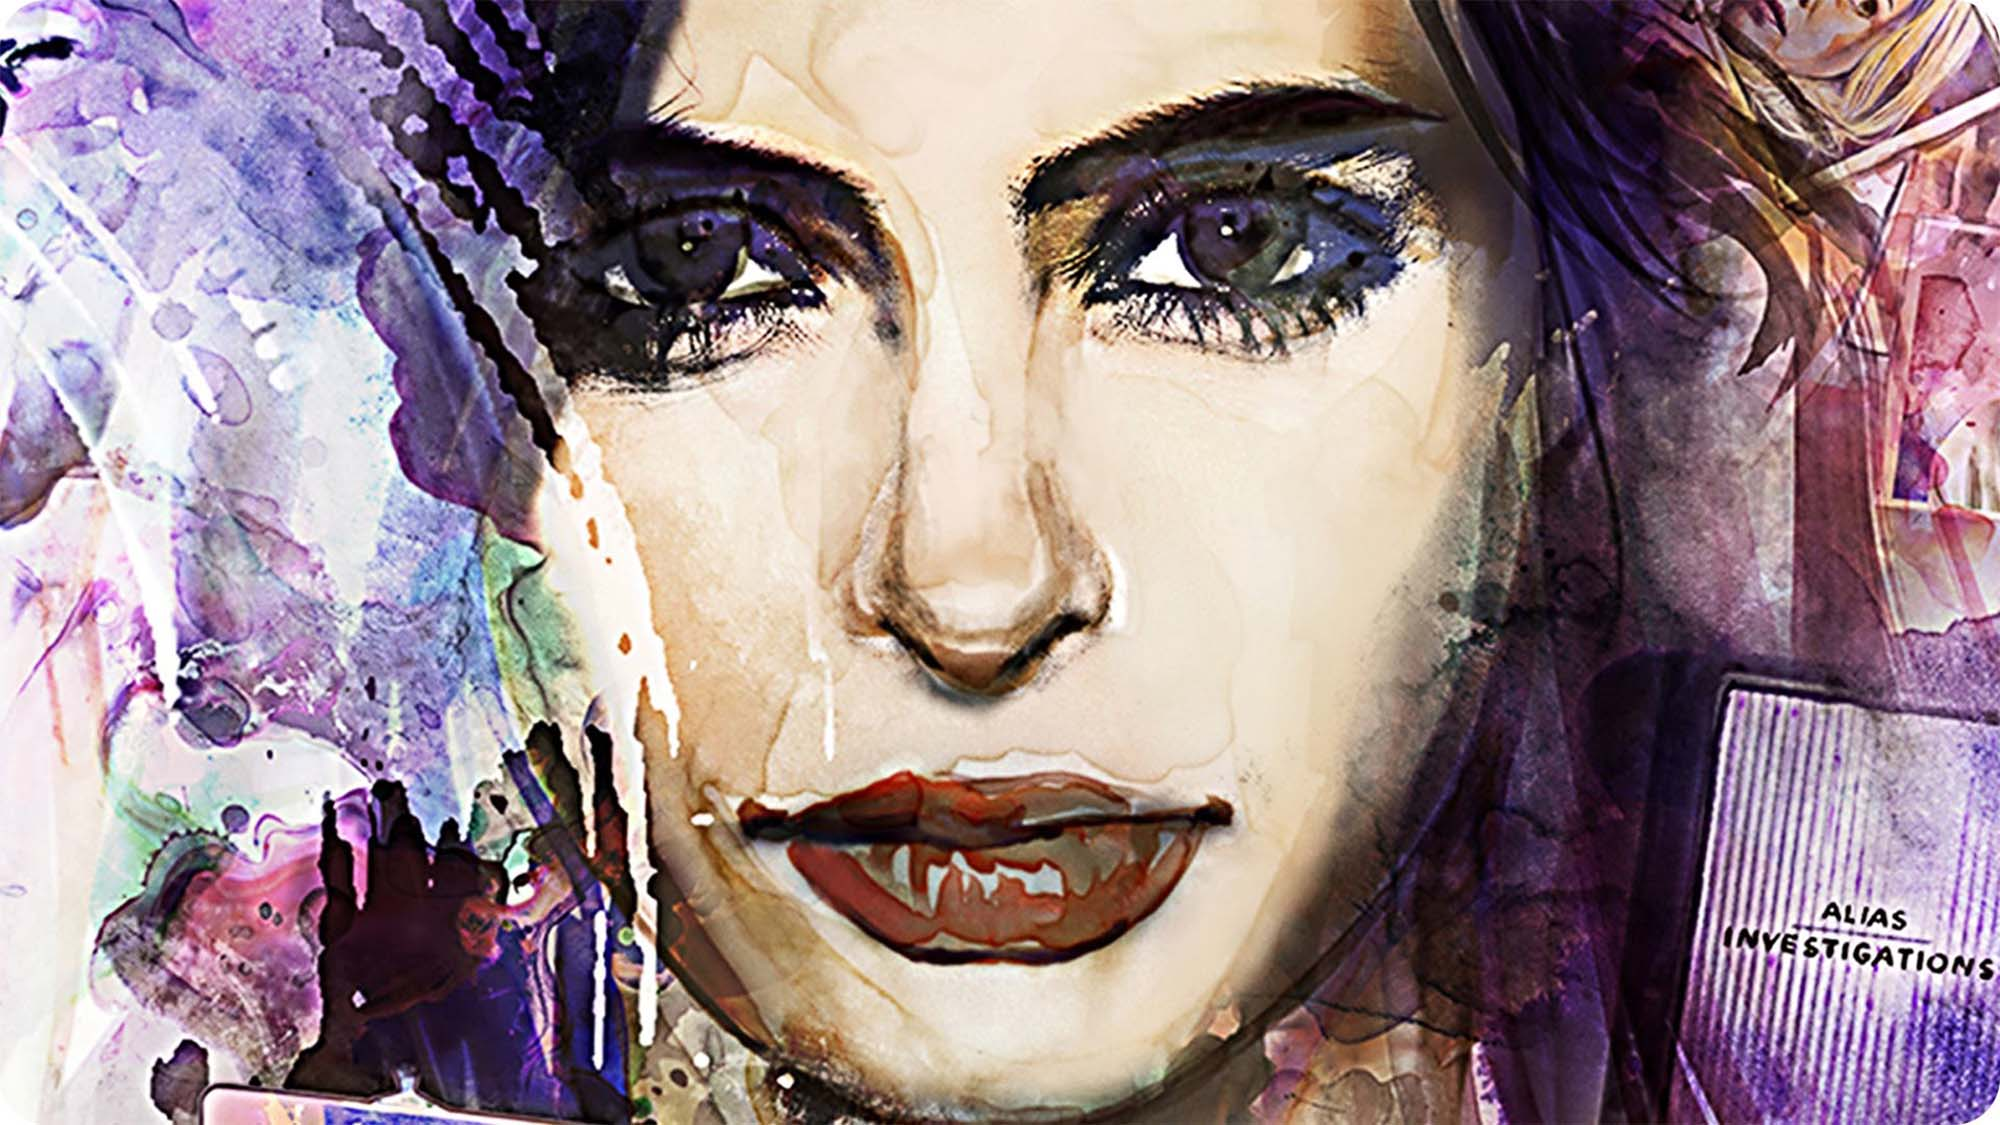 Krysten Ritter's scowling, biting performance as Jessica Jones ranks high among our favorite addicts we can't help but love despite their bad decisions.